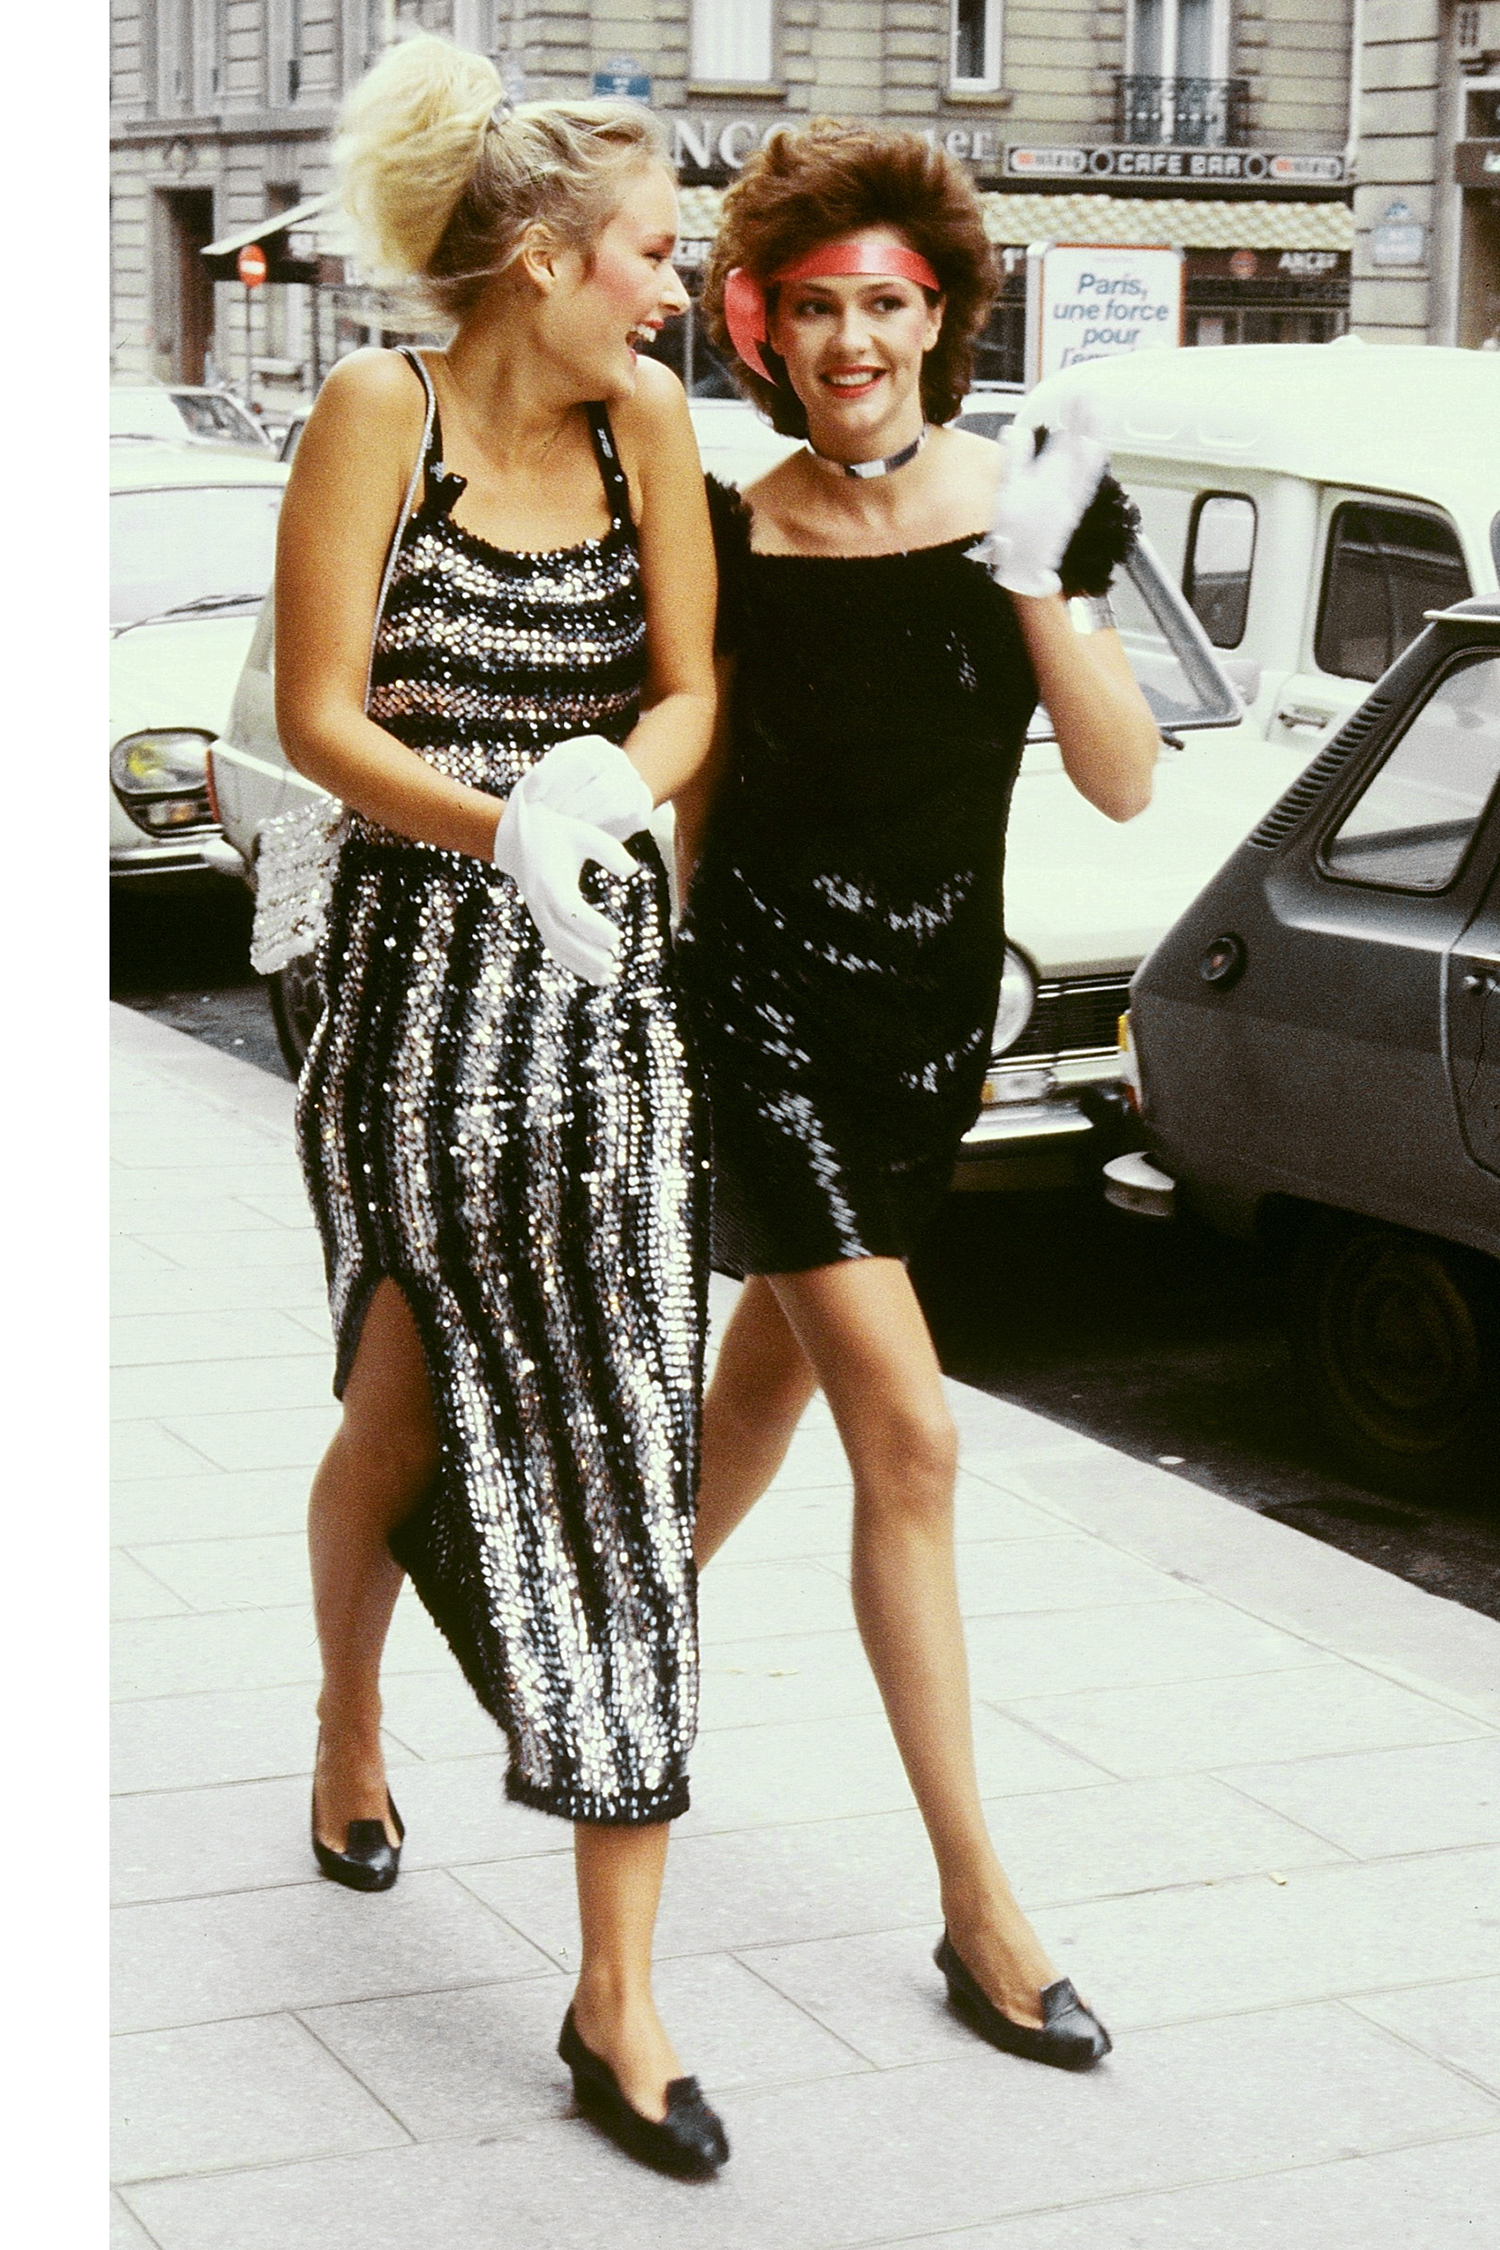 The Best of 80s Fashion - Vintage 80s Fashion Photos